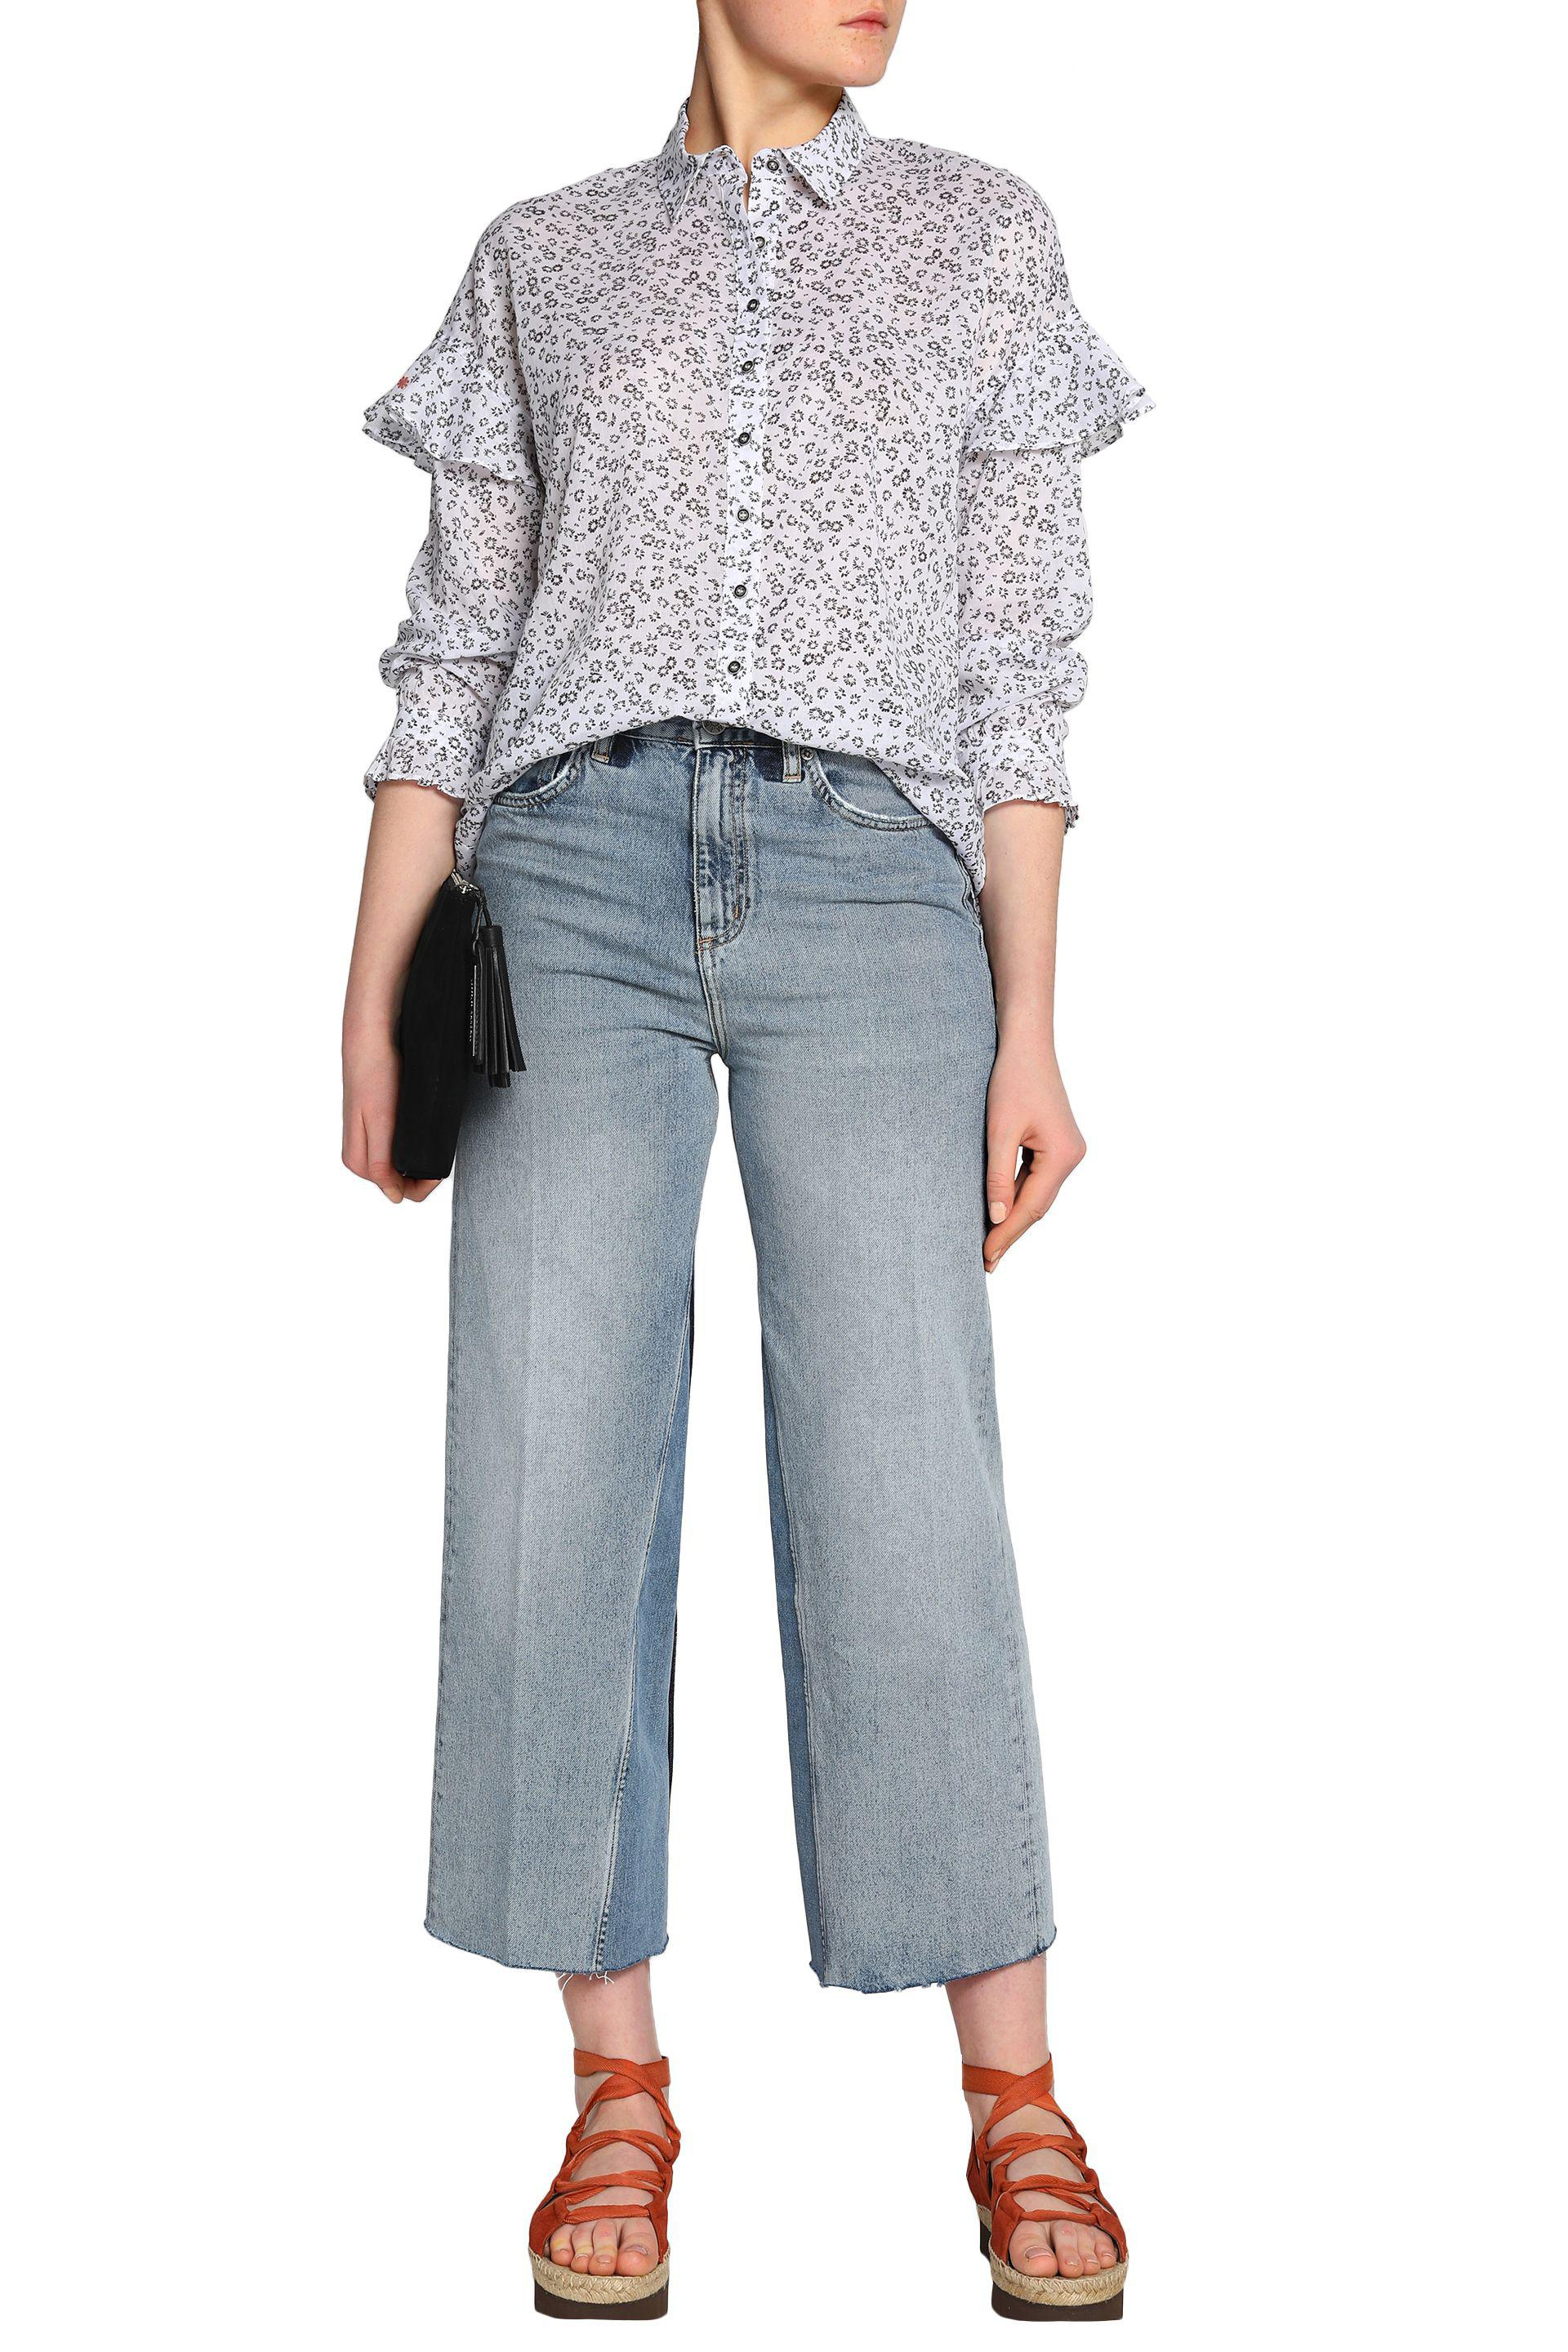 M.i.h Jeans Woman Baylis Ruffle-trimmed Floral-print Cotton-gauze Shirt White Size L Mih Jeans Clearance Cheap Price Sale Shop Offer 2018 New Outlet 2018 New Huge Surprise Cheap Price 8Rlgu2